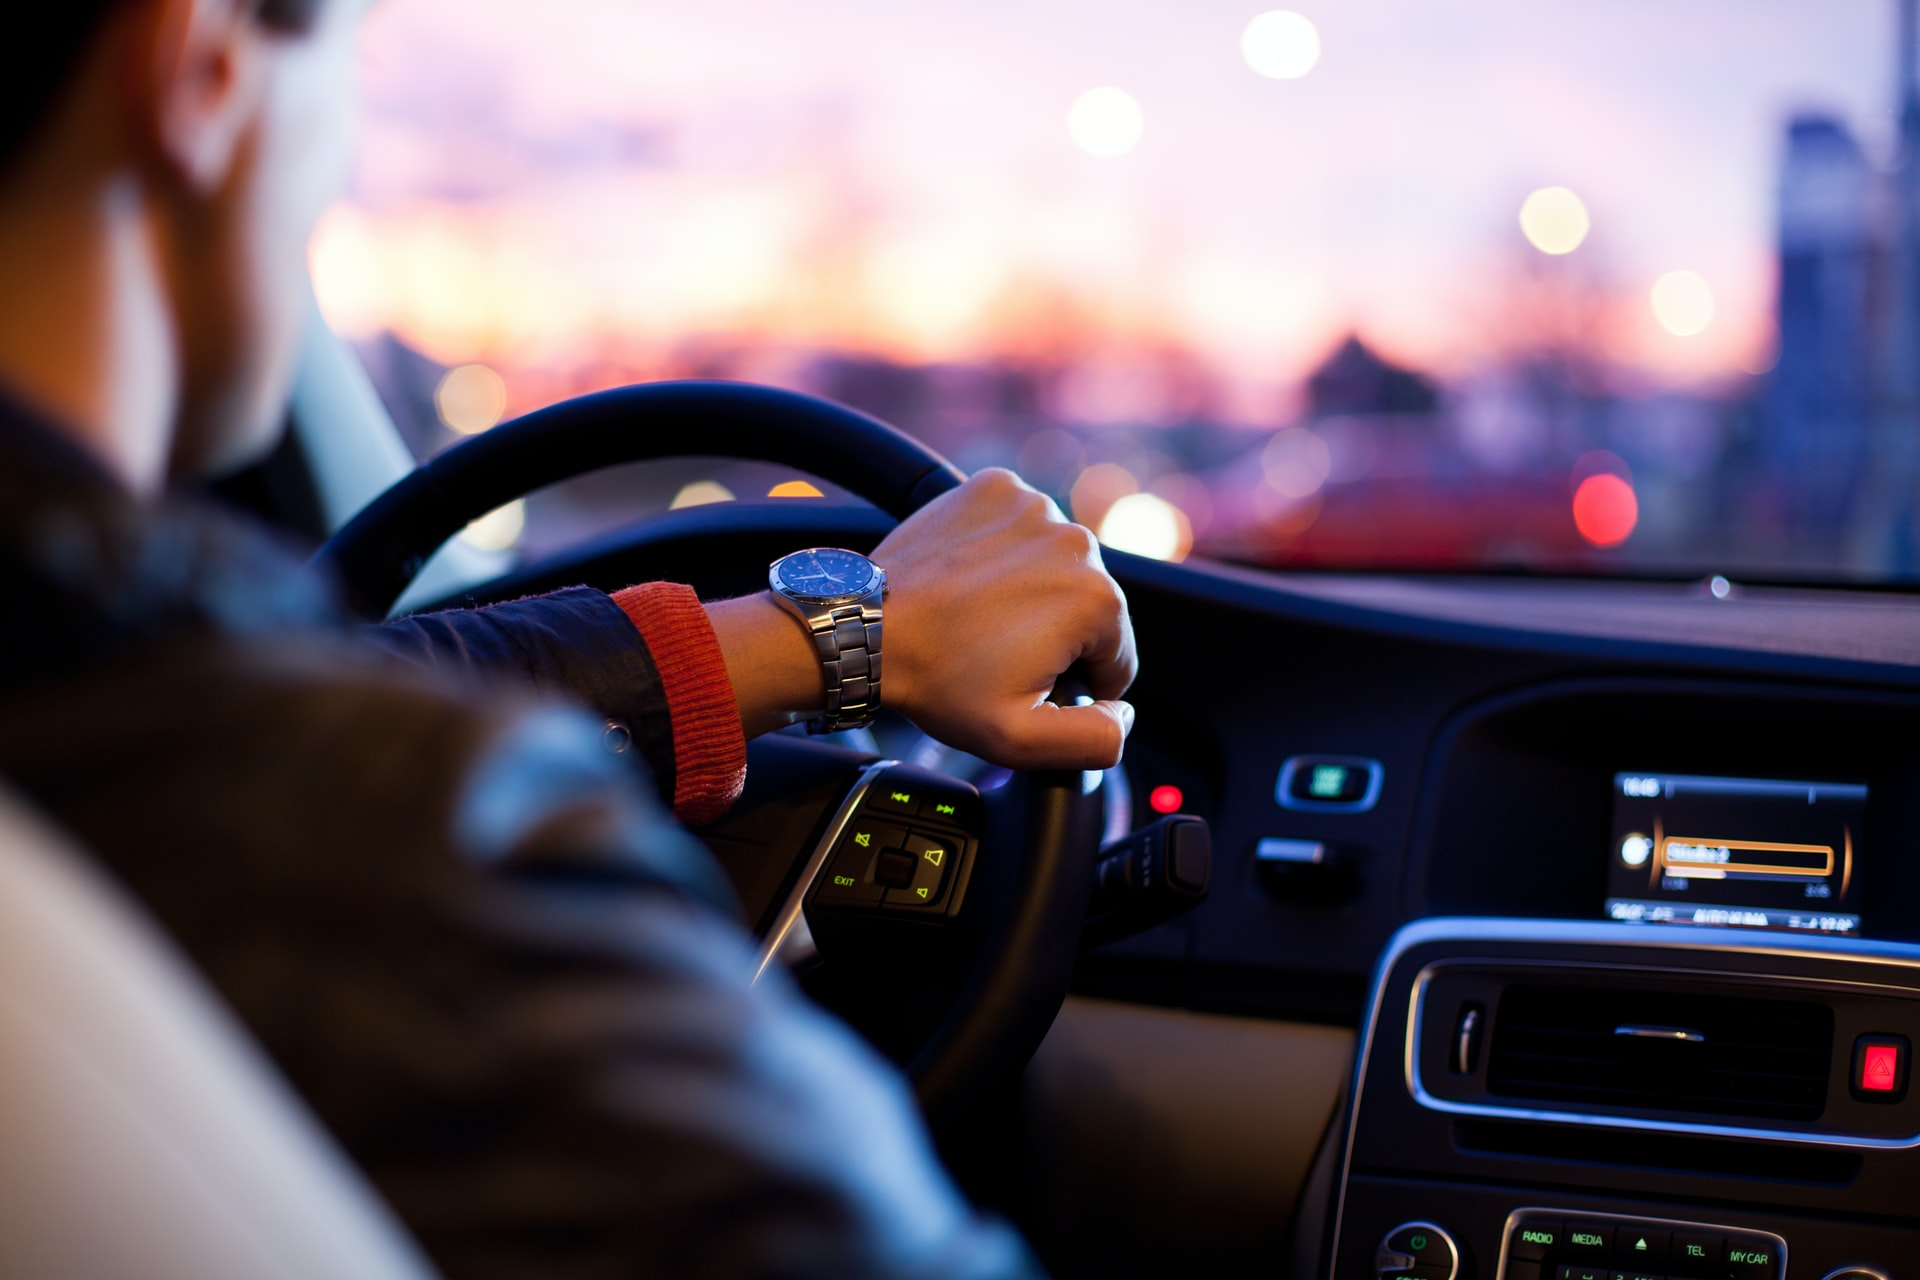 Buying used car safely